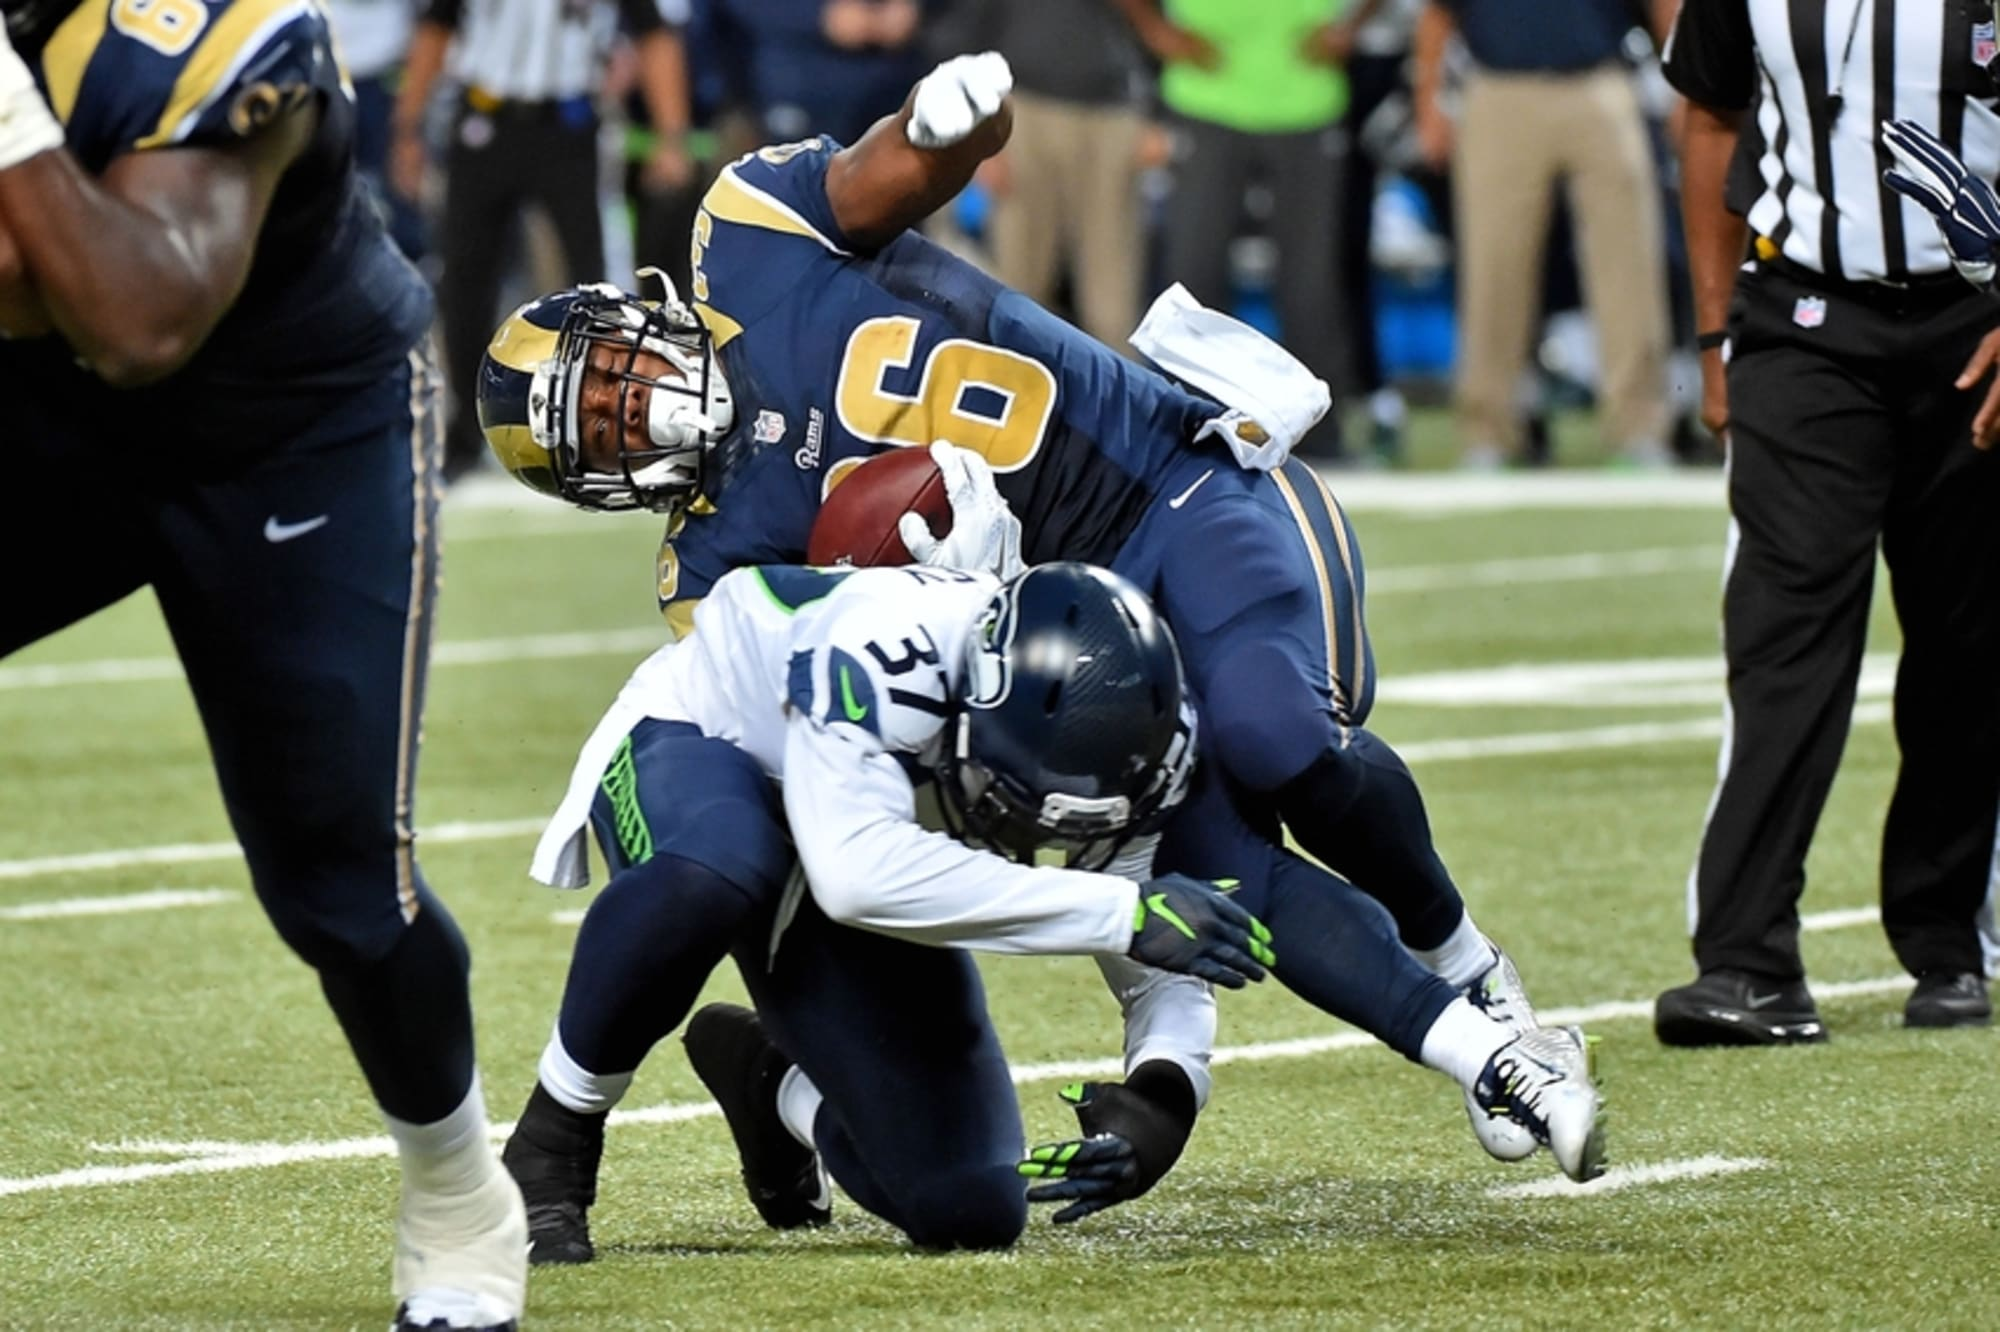 Seattle Seahawks Vs St Louis Rams Full Highlights Final Score And More